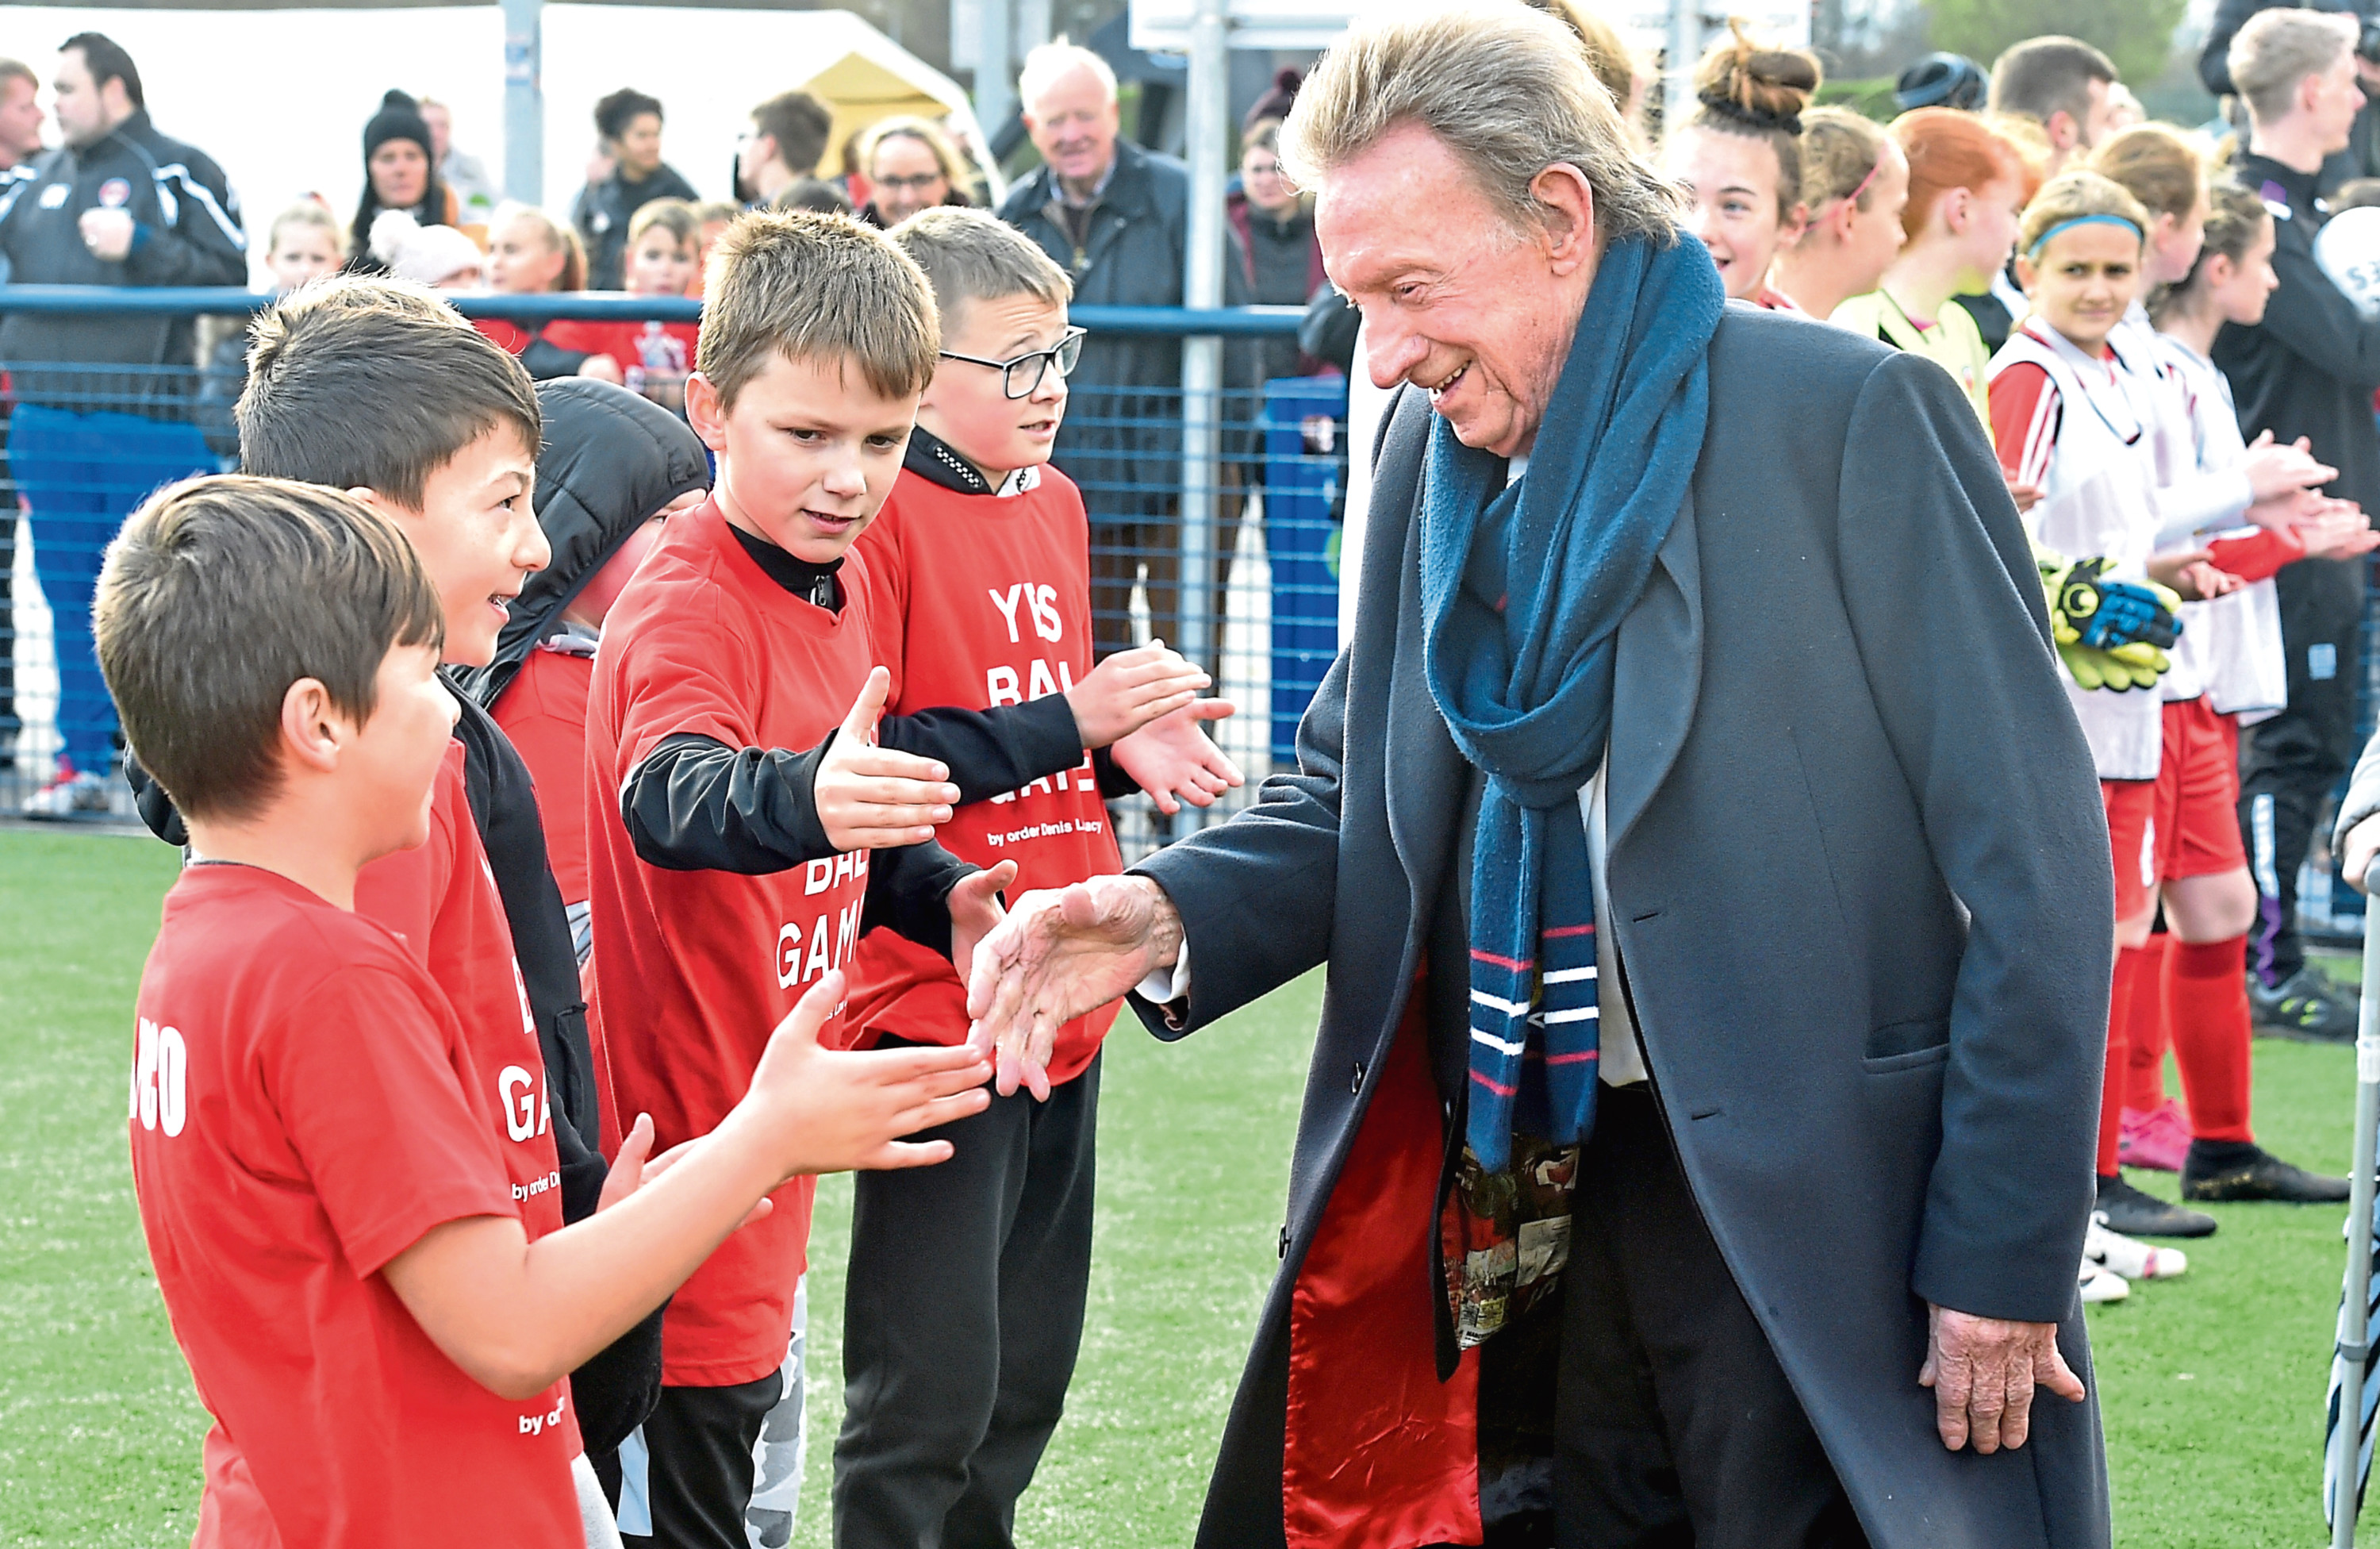 Aberdeen-born legend Denis Law opens the new pitch named after Neale Cooper